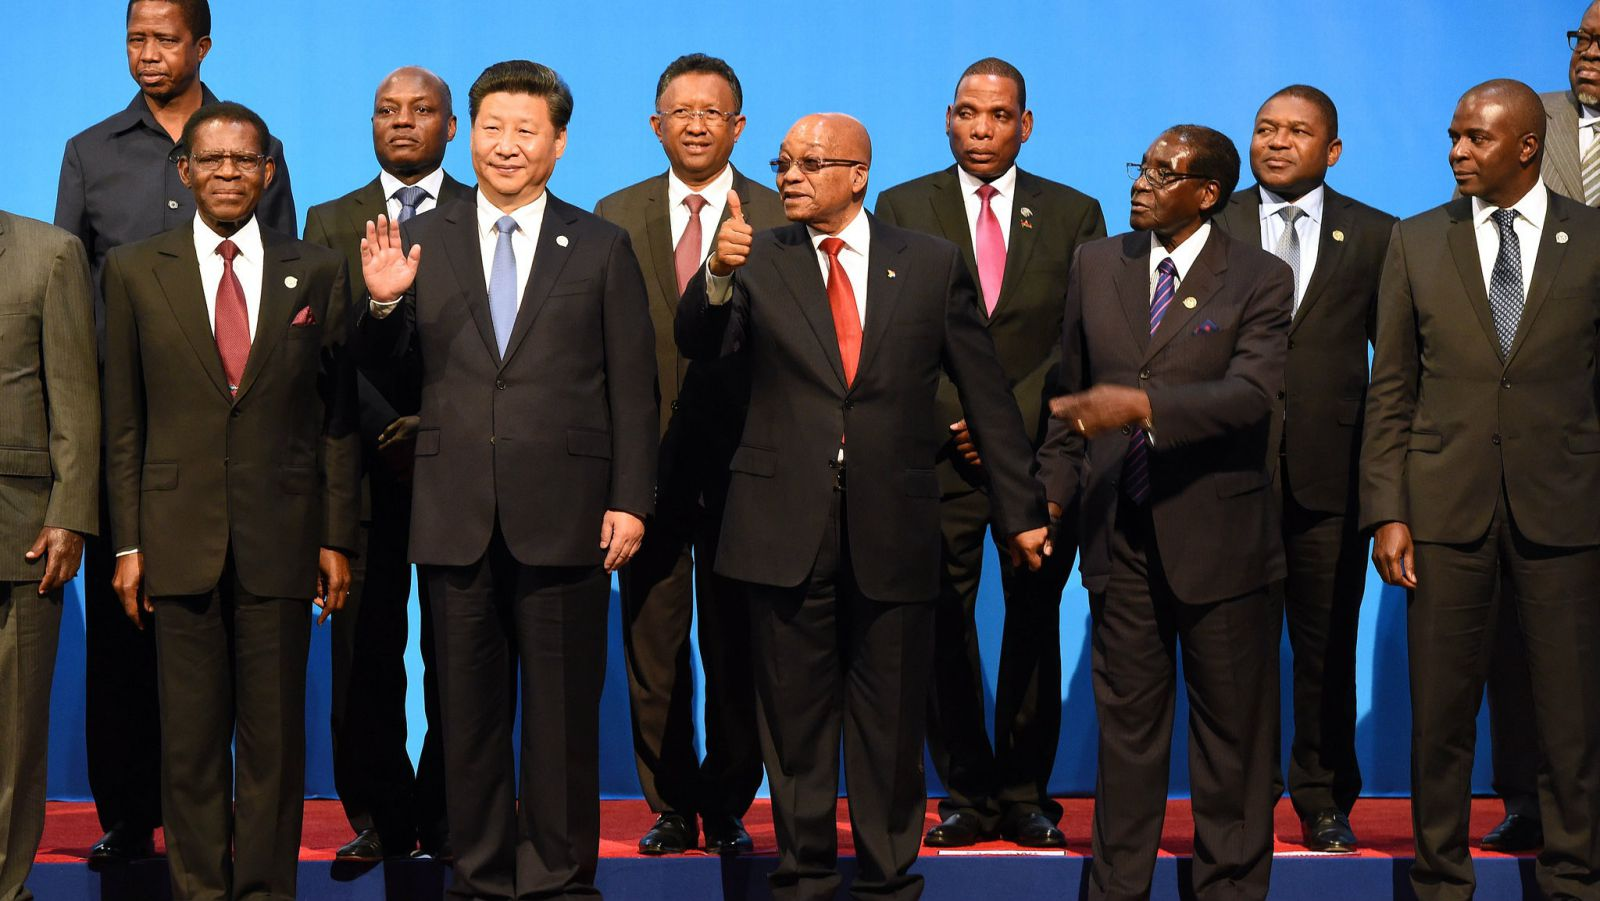 """china in africa Despite the current frenetic media salvo unrelentingly declaring china's """"new inroads"""" into africa, nothing could be further from the truth china's presence in africa dates back centuries and spanned a number of ancient dynasties."""